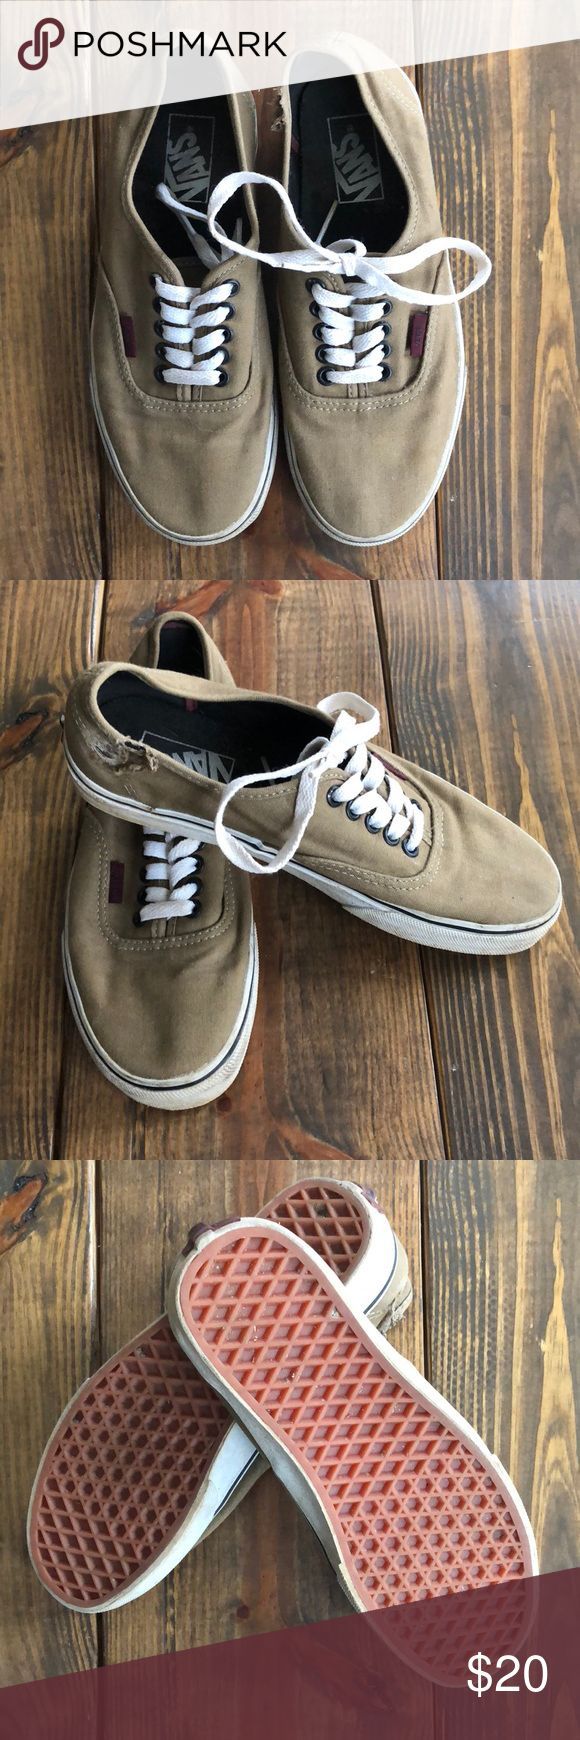 Vans sneakers in women's 8 Women's 8 Vans sneakers. Excellent condition except for scuff on left shoe near ankle where I fell off my bicycle LOL. Moving cross country and purging my closet. All offers are welcome. Medium khaki. Vans Shoes